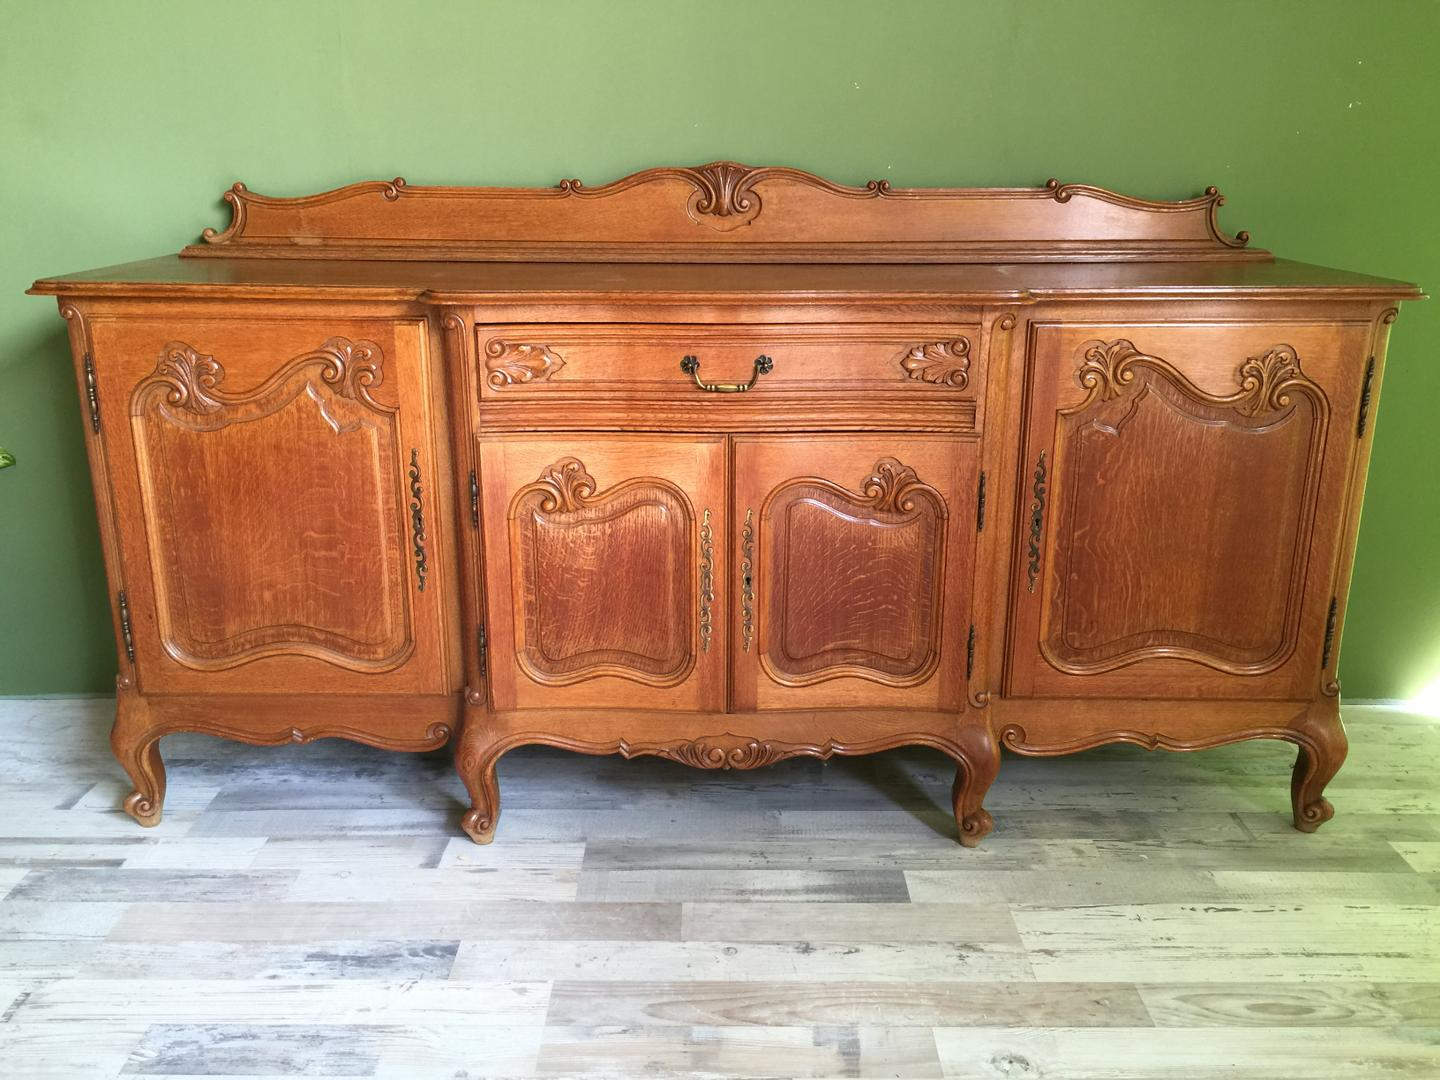 Queen Anne, Brocant dressoir